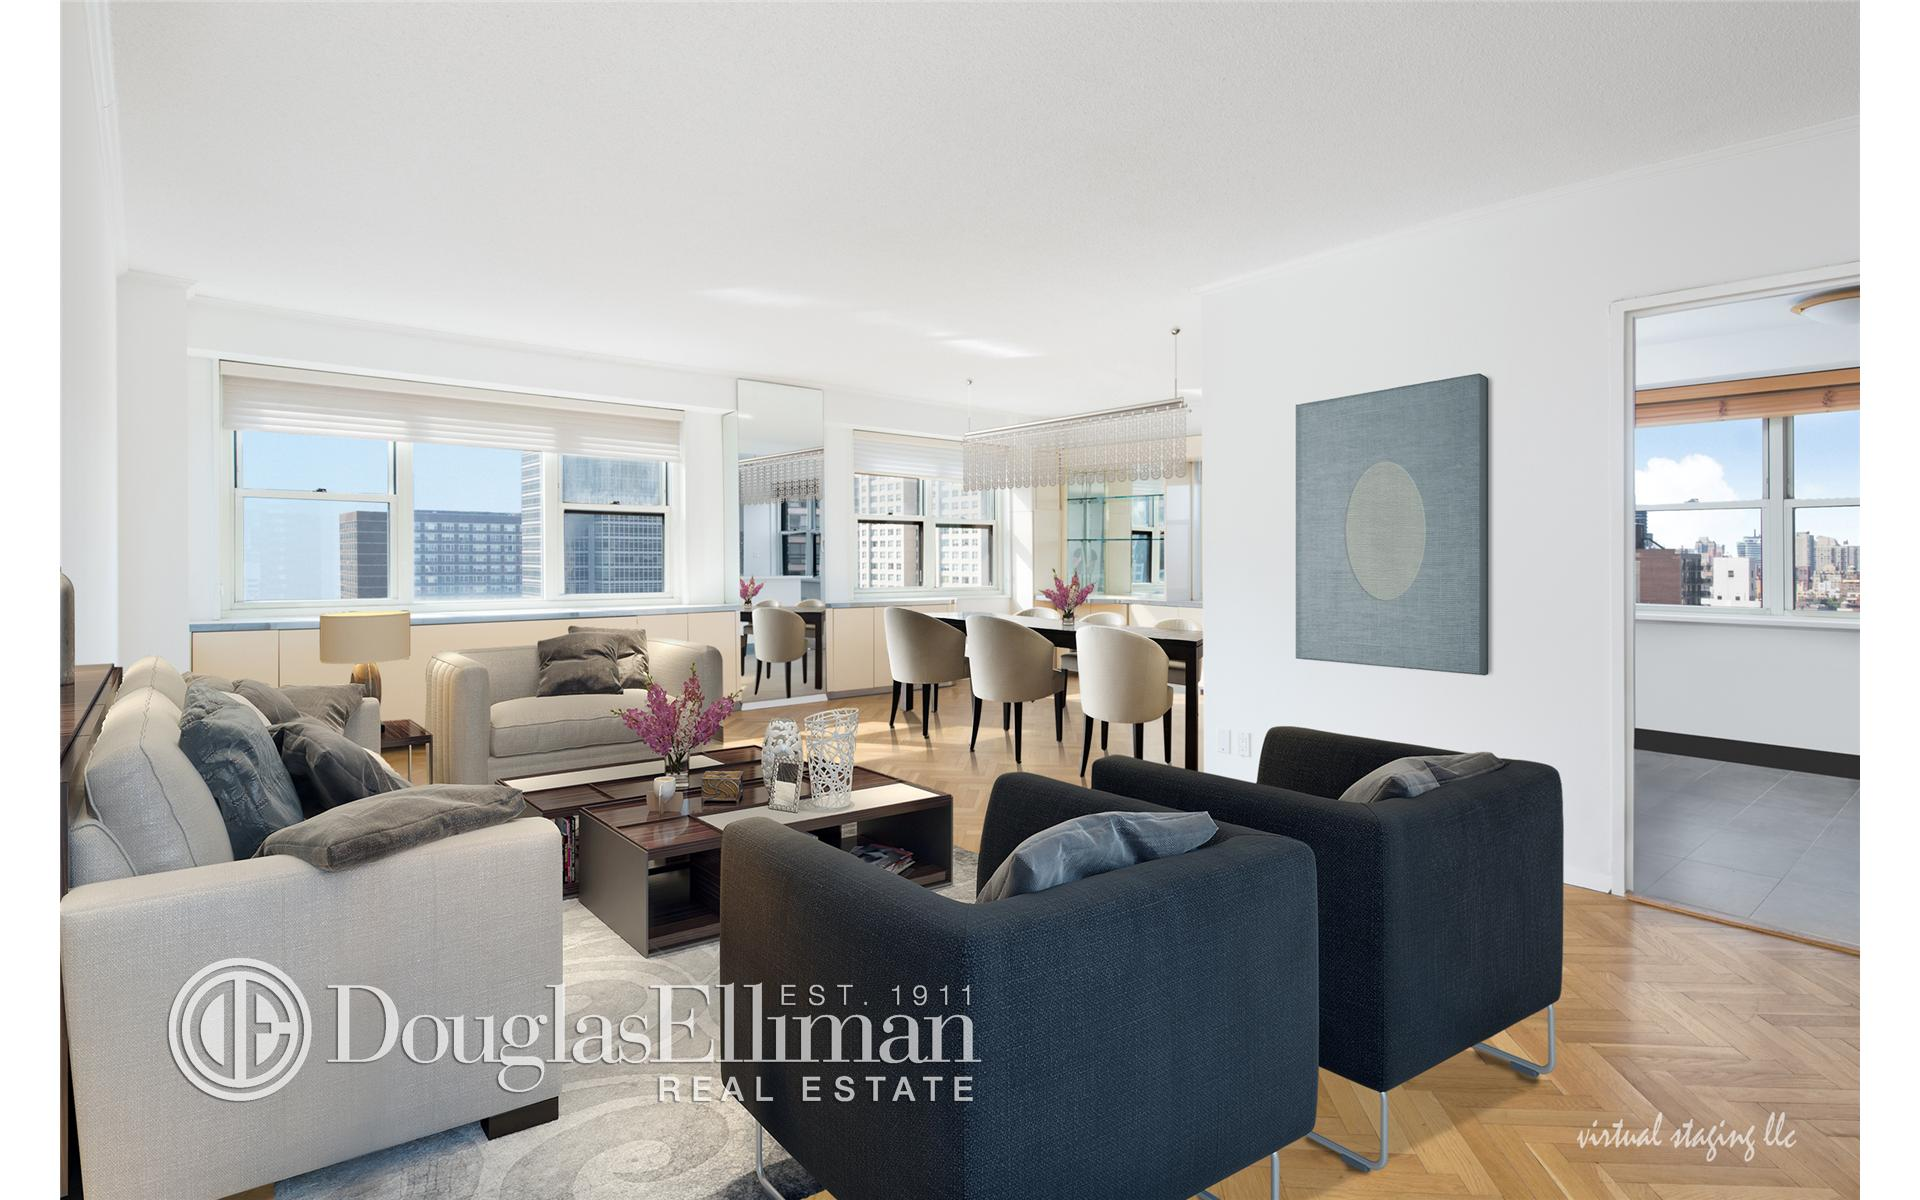 Condominium for Sale at The Revere Condo, The Revere Condo, 400 East 54th Street New York, New York 10022 United States